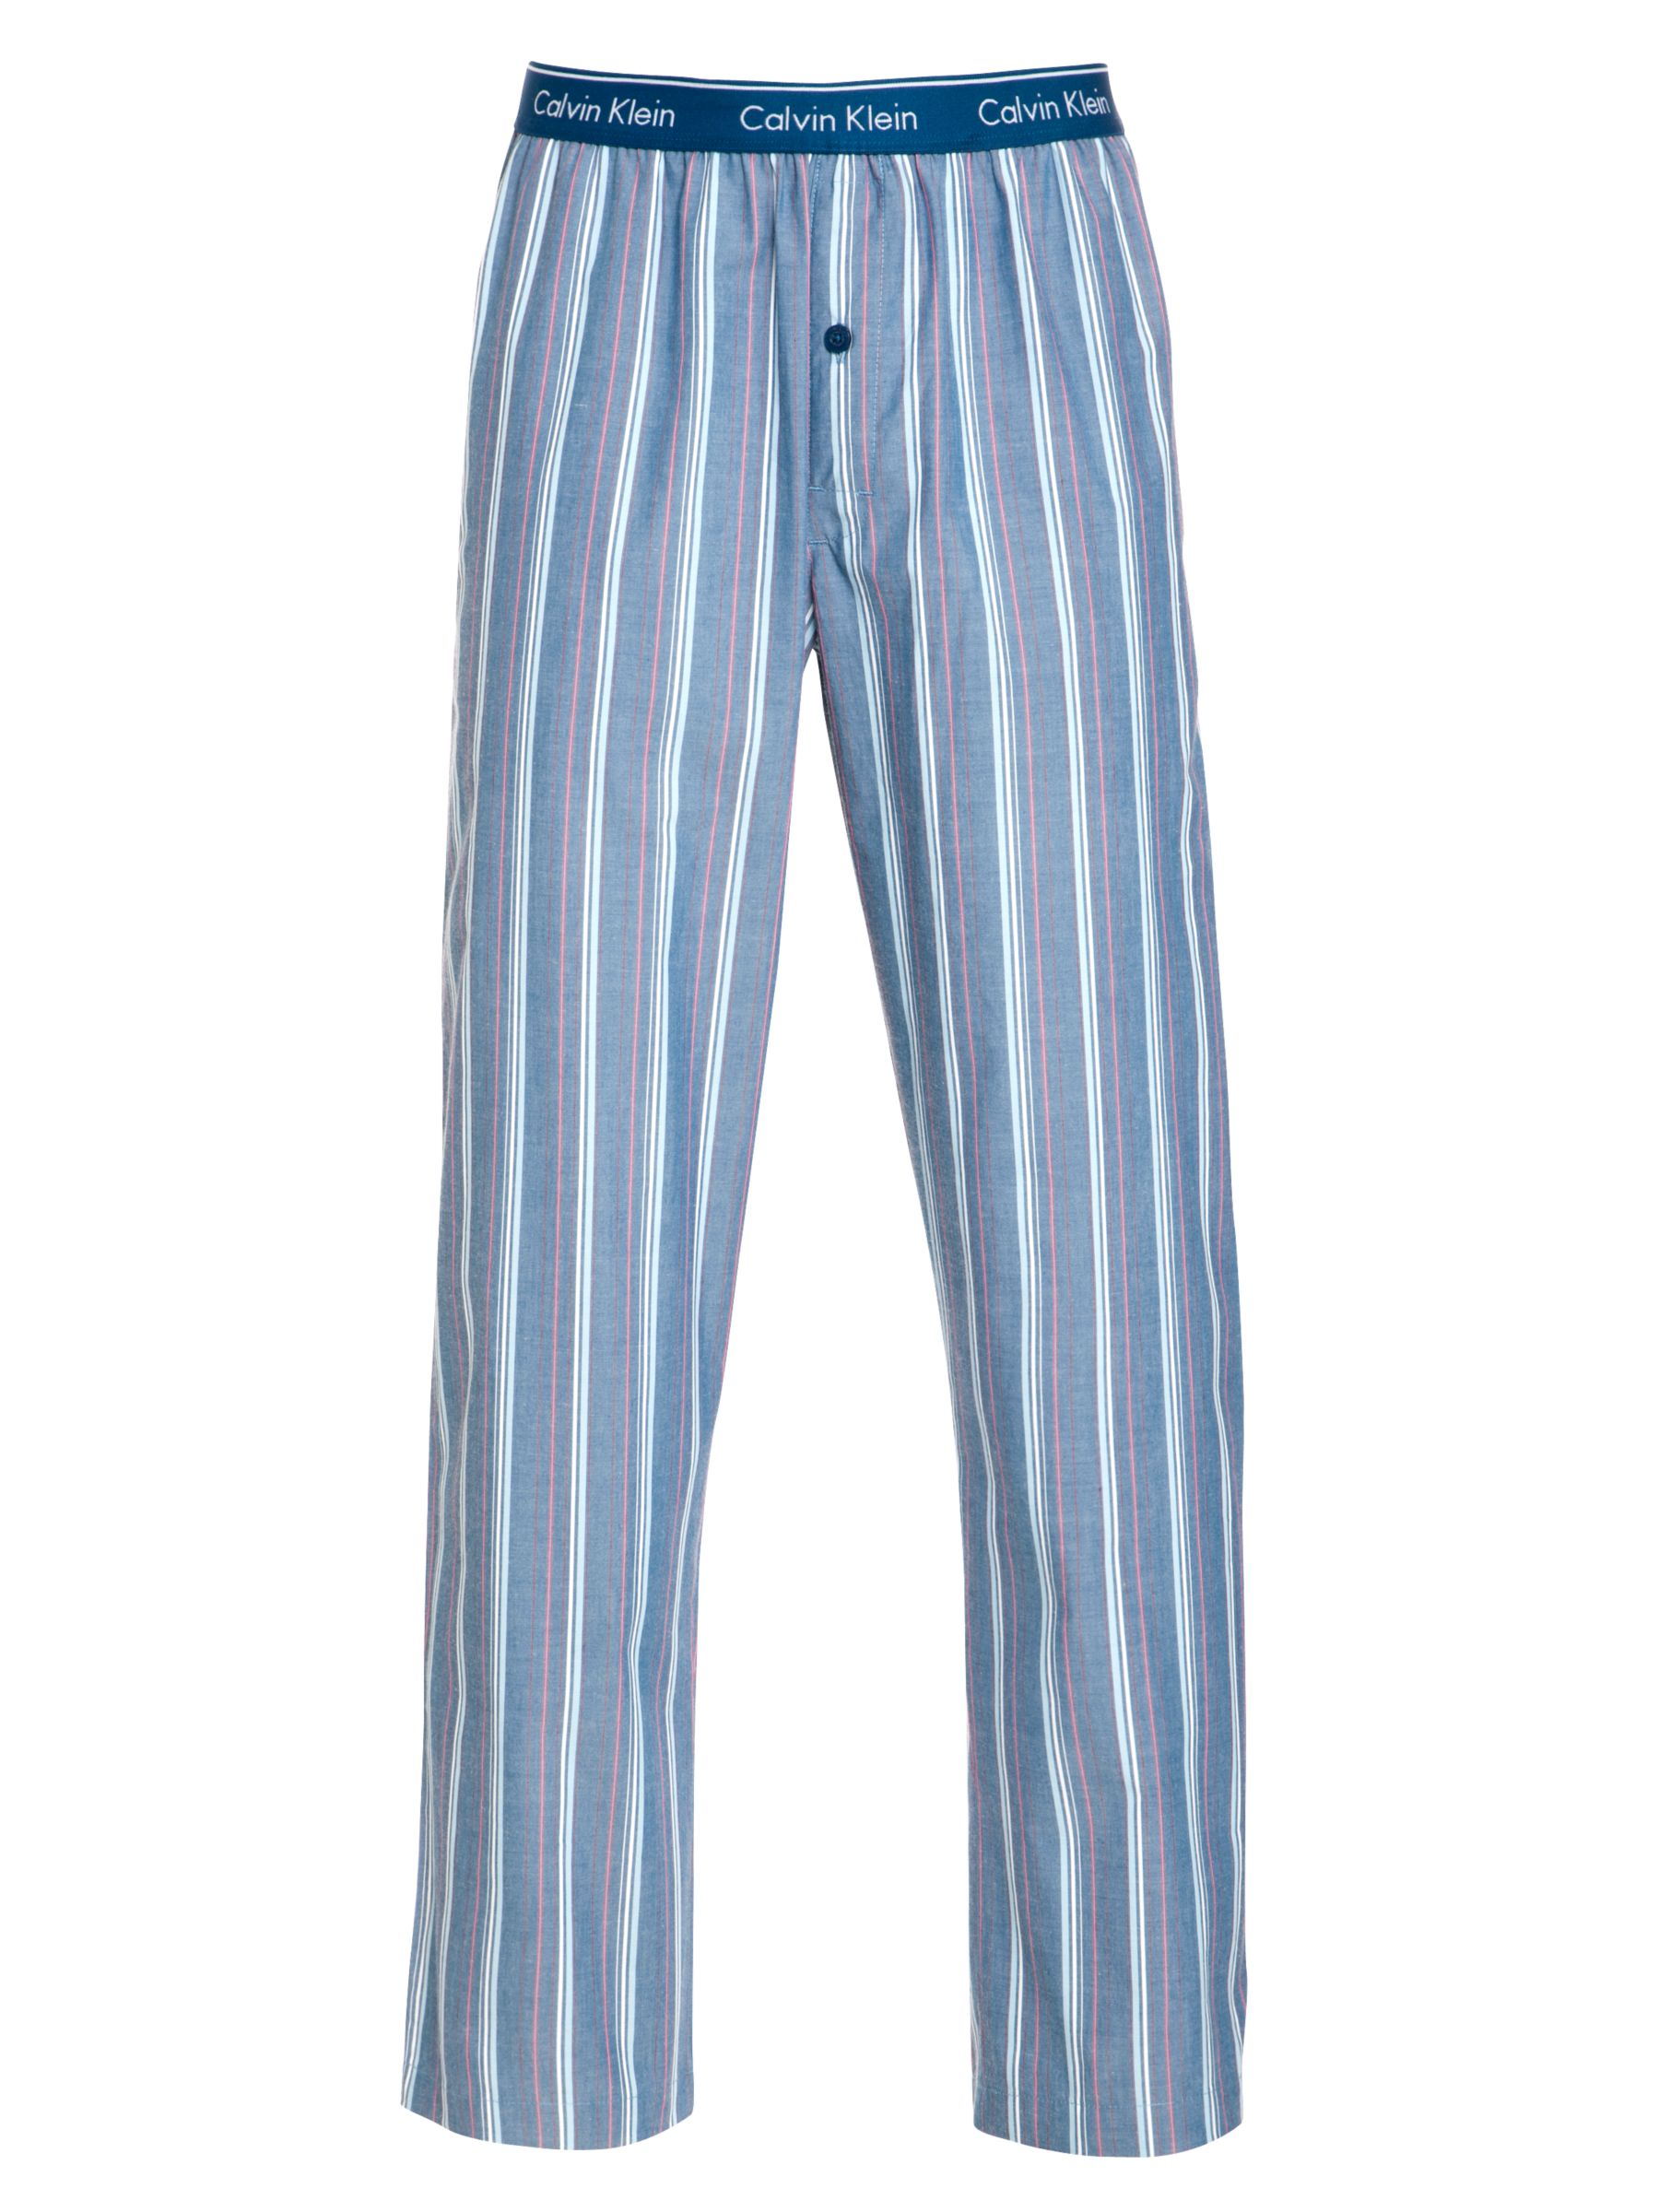 Calvin Klein Striped Pyjama Pants, Blue